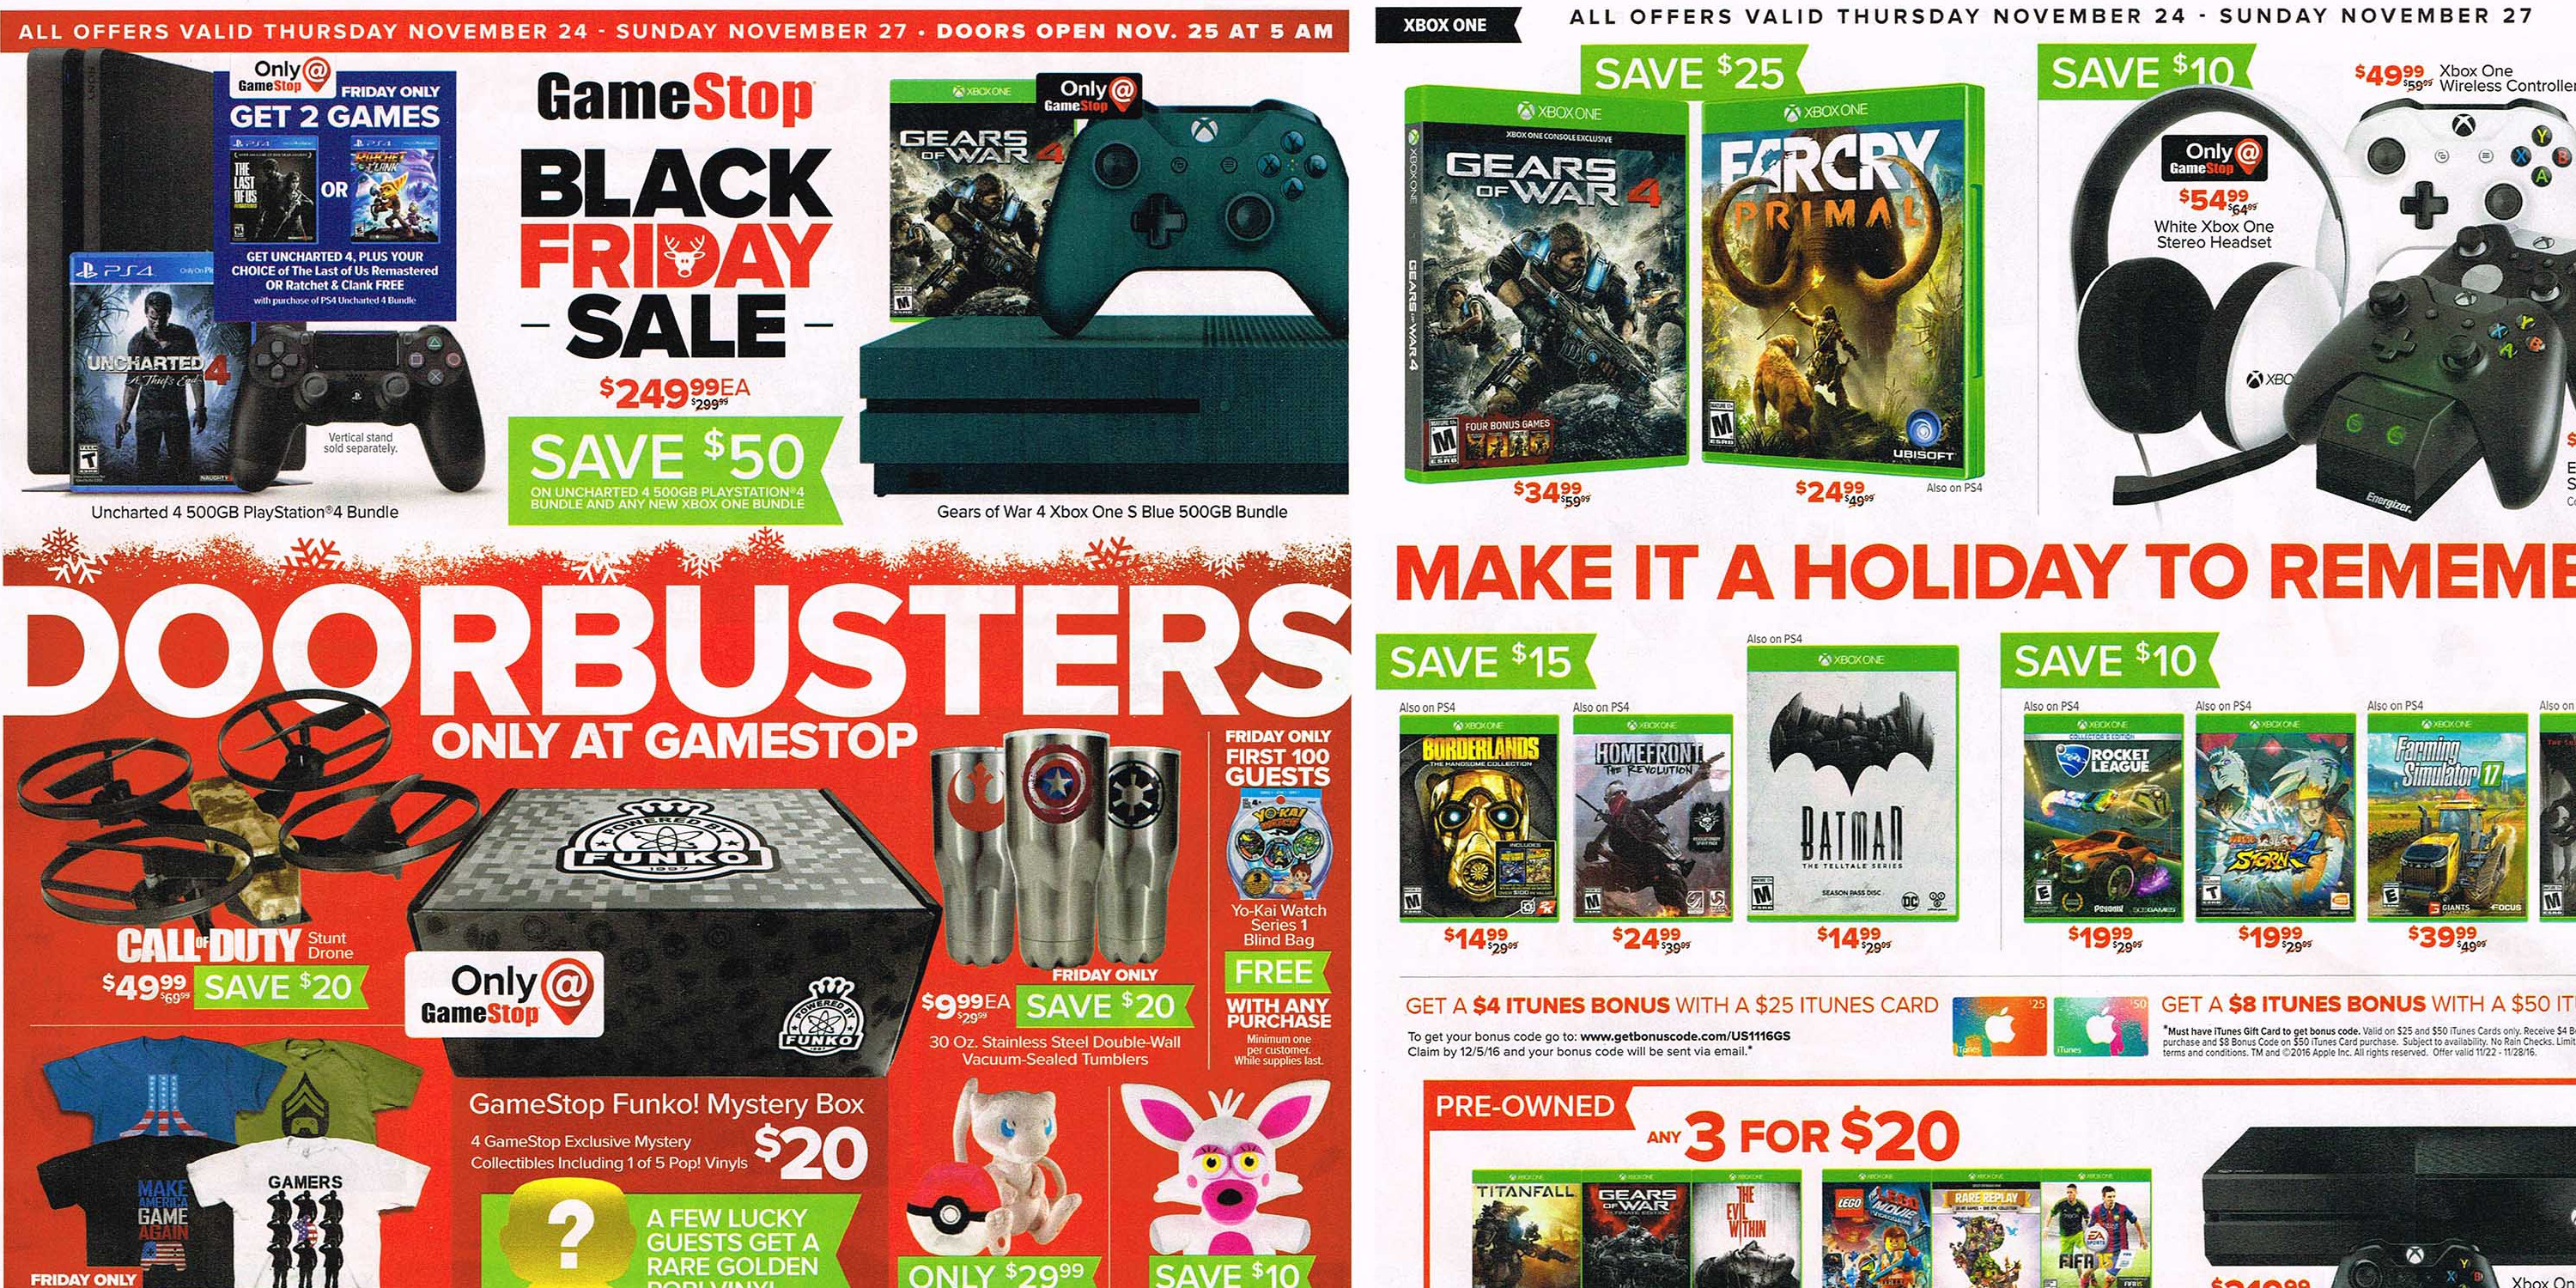 GameStop Black Friday 2016 Ad: PS4 bundle + extra game ...